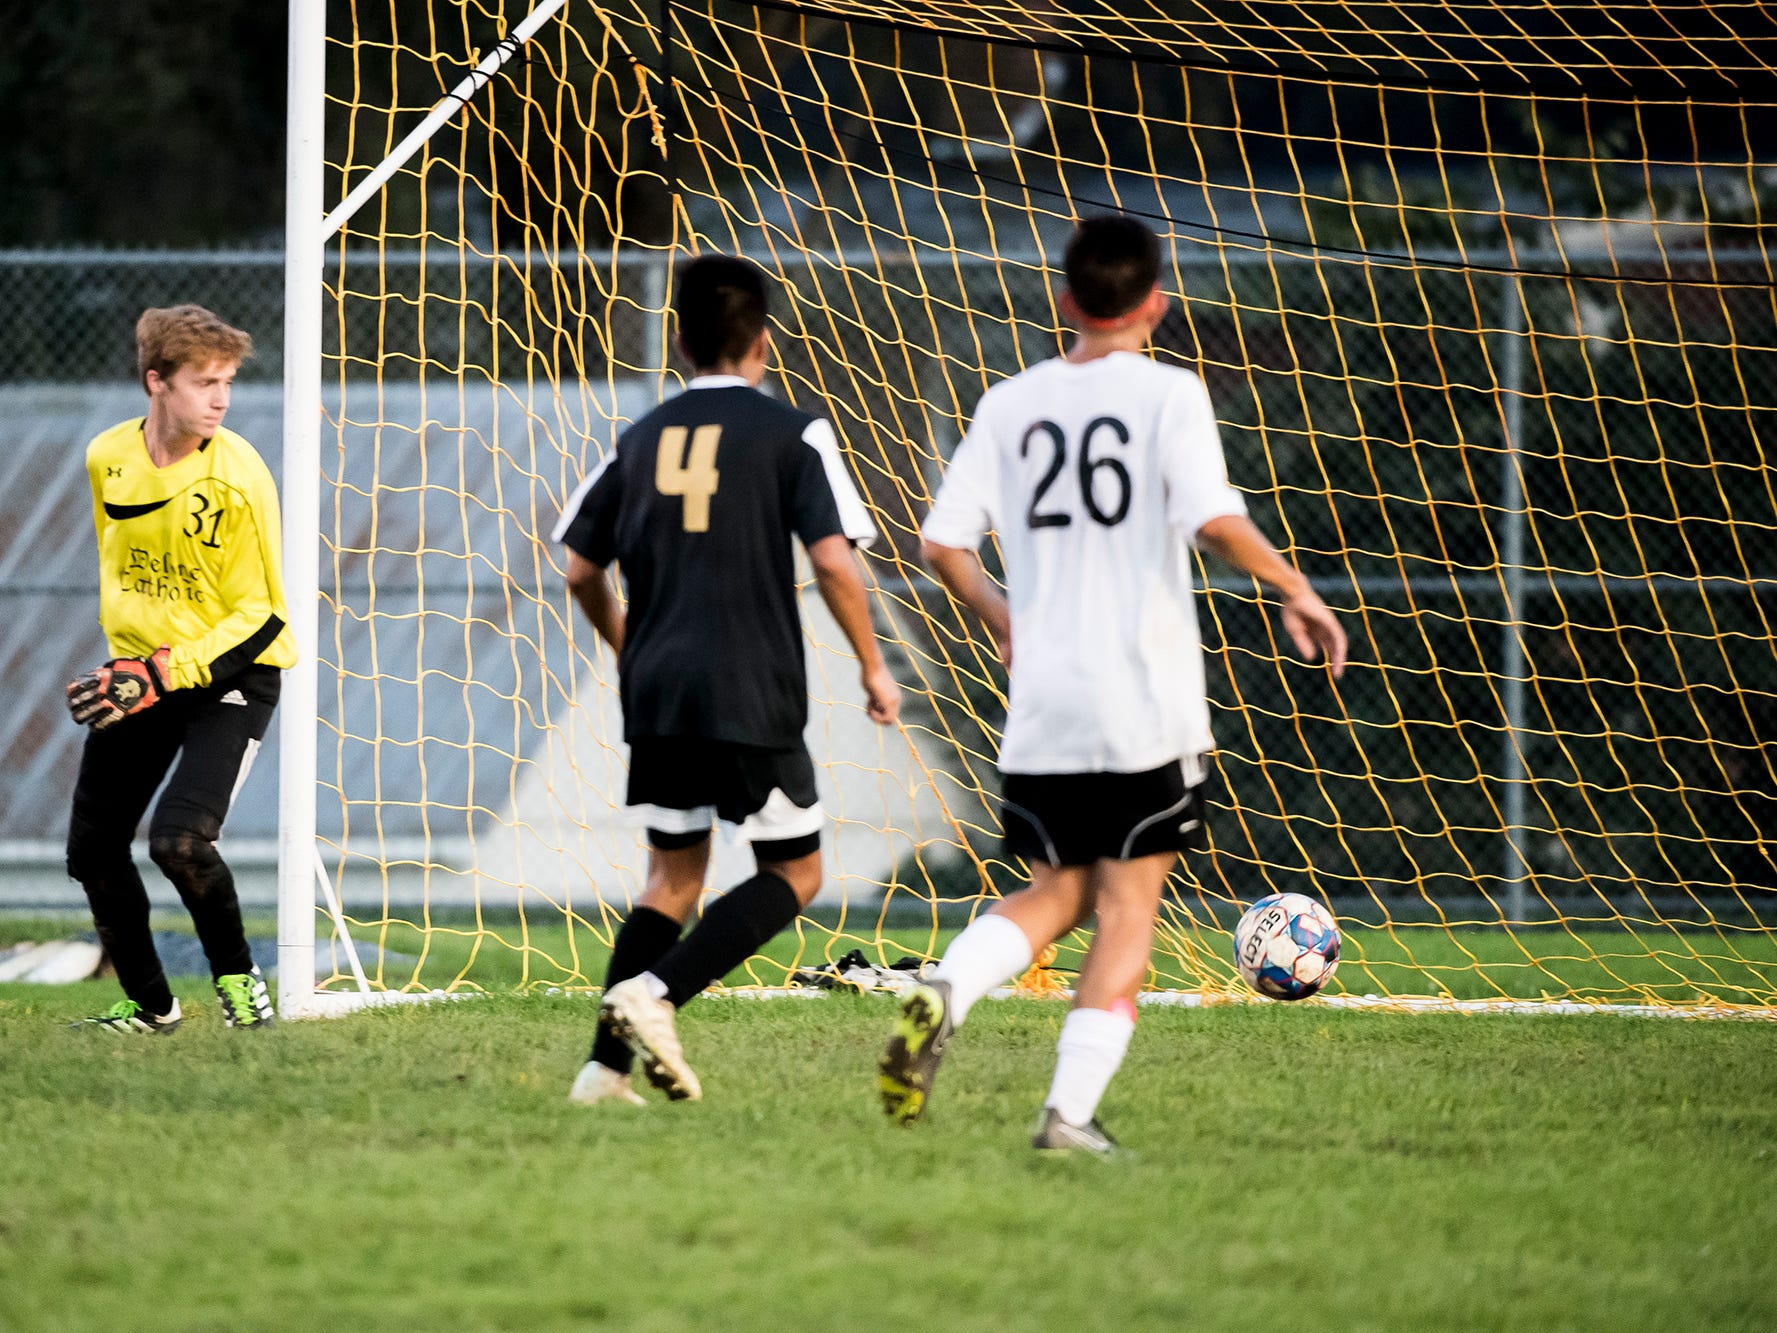 The ball rolls past Delone Catholic goalkeeper Jacob Boccabella and into the back of the net after a shot from Biglerville's Tyler Shannon on Wednesday, October 3, 2018. The Canners won 3-0.